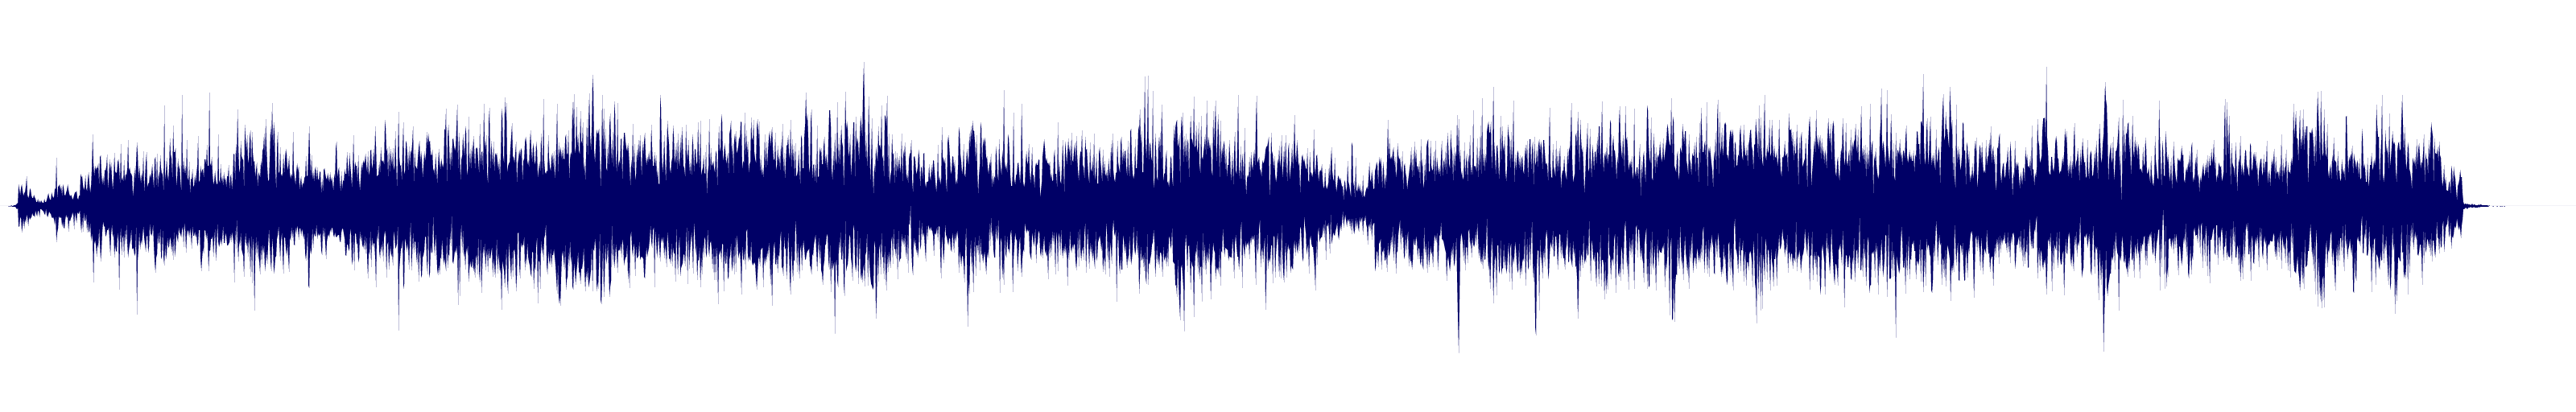 waveform of track #141346